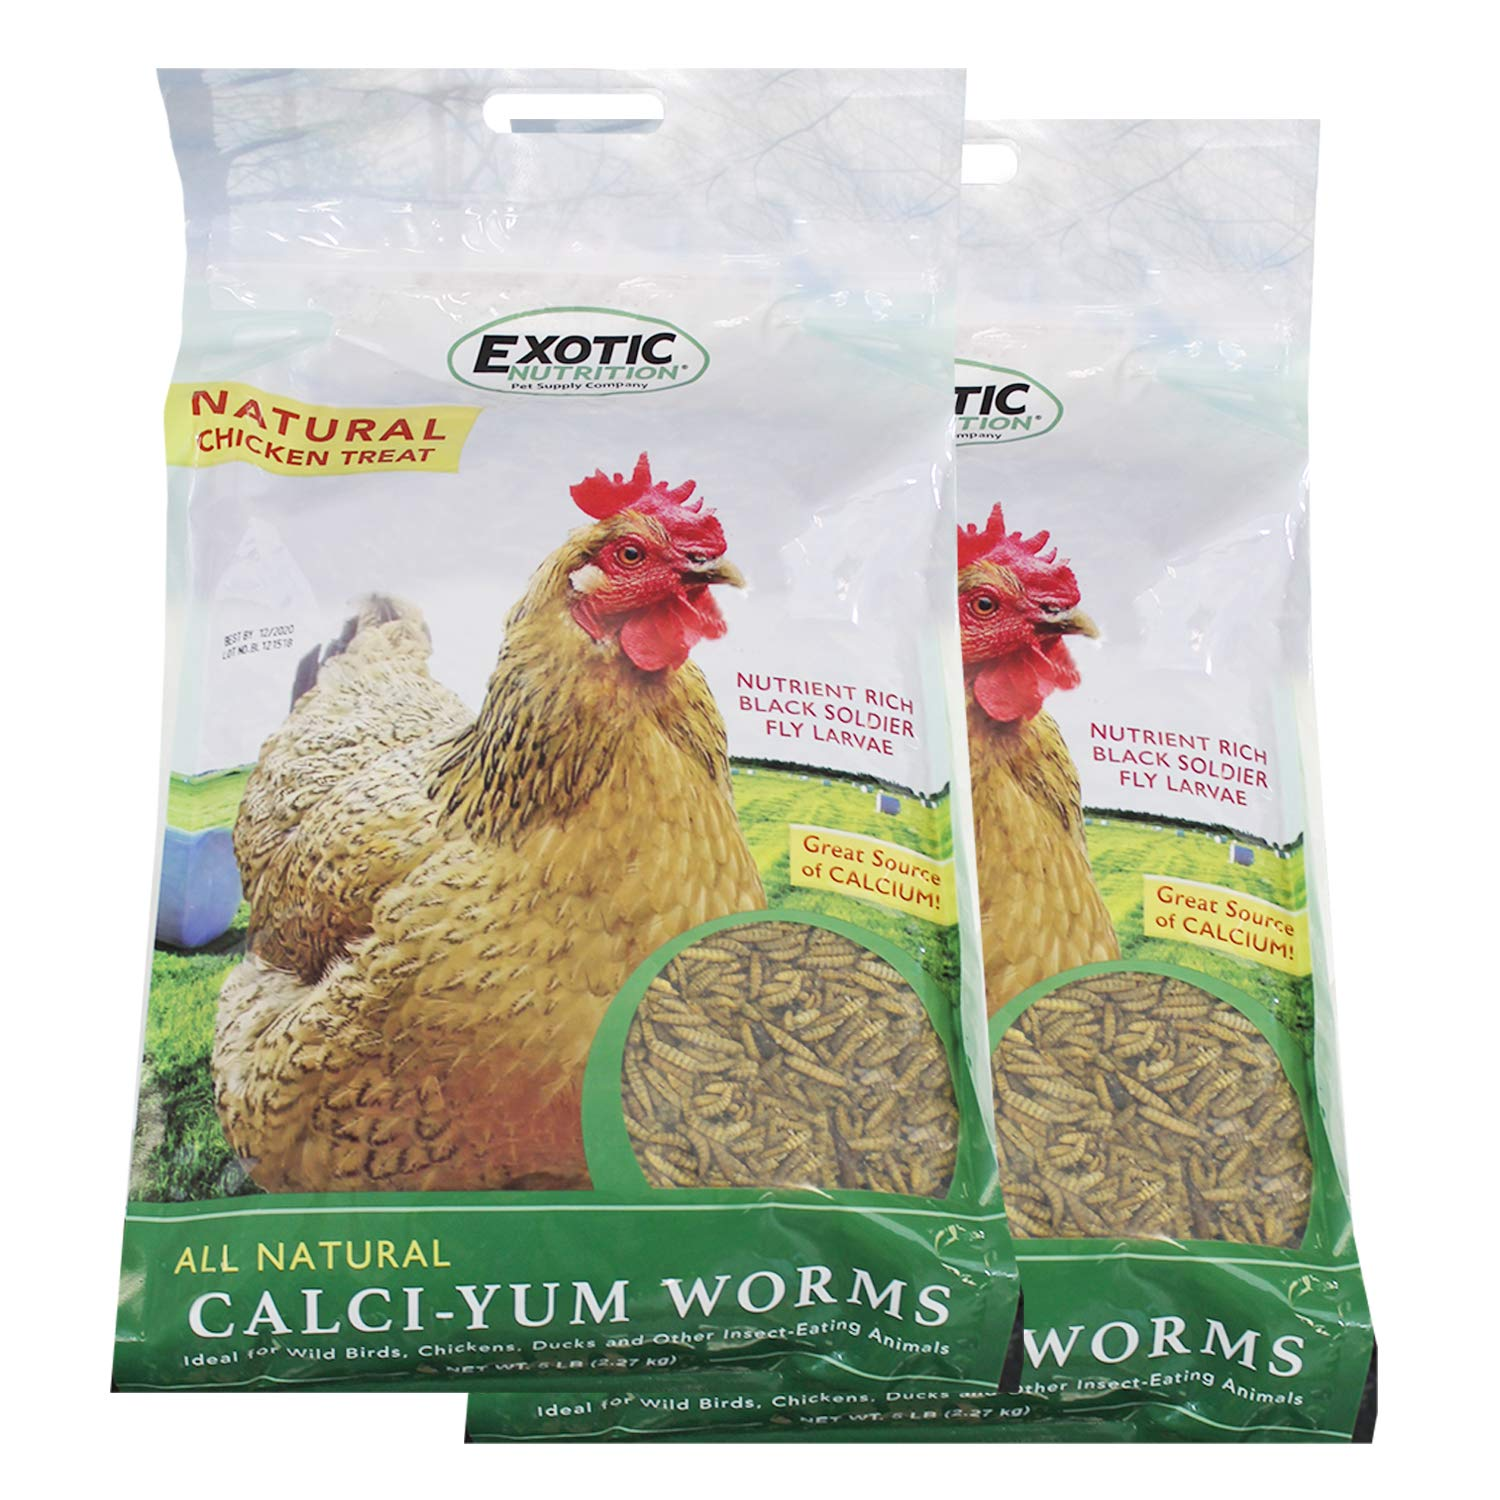 Bulk Dried Calci-Yum Worms (10 lbs.) - Black Soldier Fly Larvae - High-Calcium Insect Treat - Chickens, Wild Birds, Hedgehogs, Bluebirds, Reptiles, Sugar Gliders, Opossums, Skunks, Lizards, Fish by Exotic Nutrition